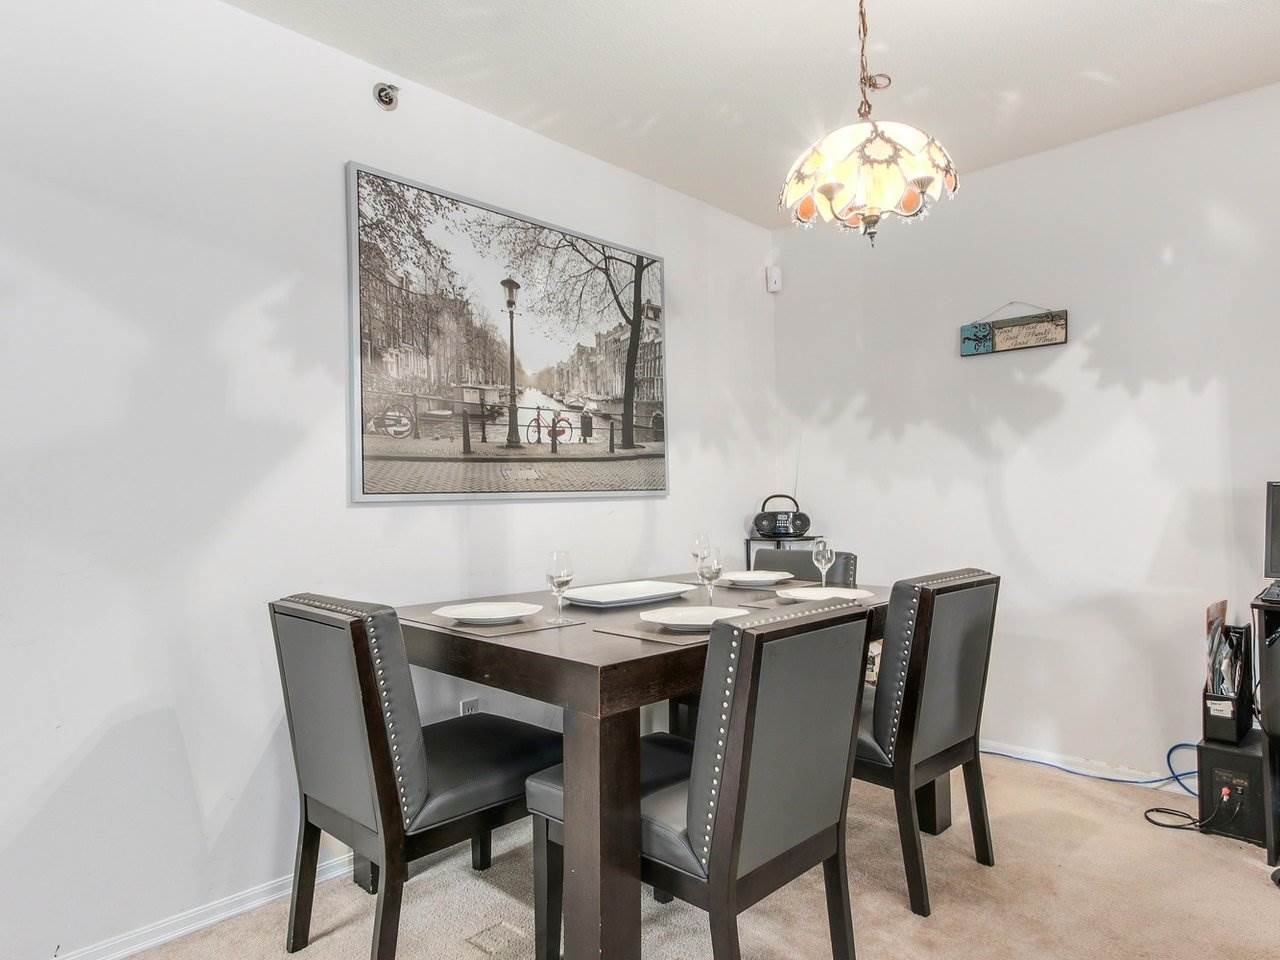 Photo 5: 105 1175 HEFFLEY Crescent in Coquitlam: North Coquitlam Condo for sale : MLS(r) # R2185533